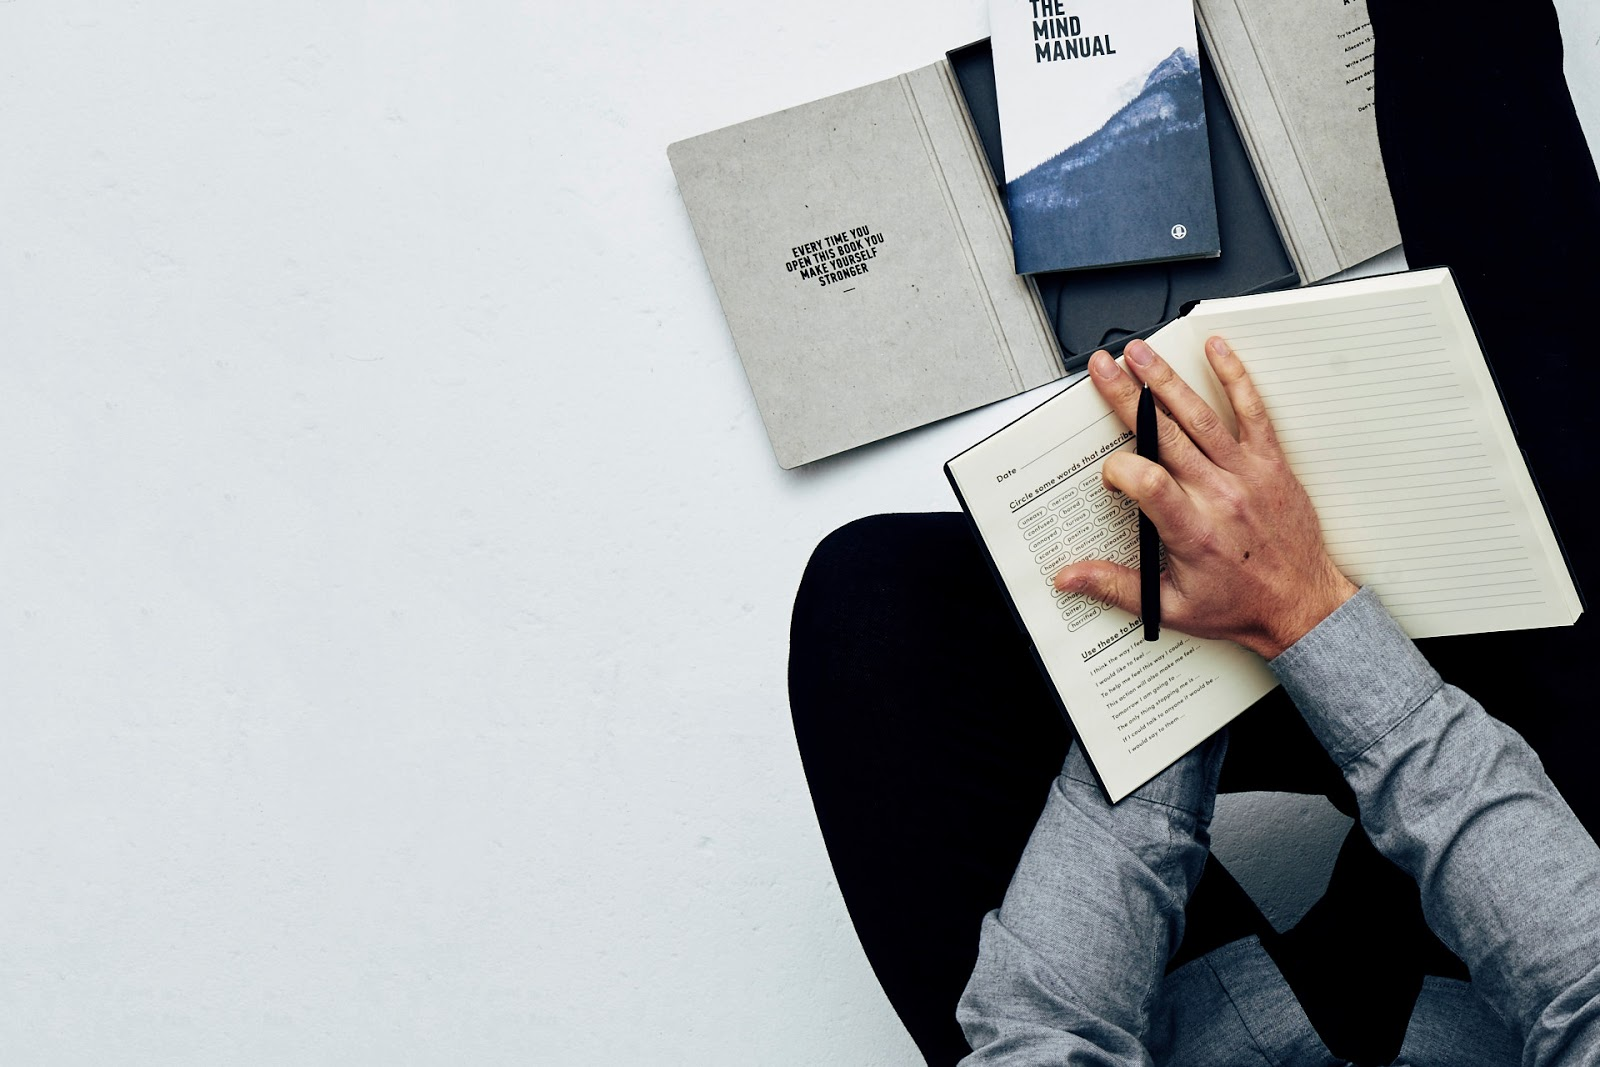 Menswear blogger James Brown from getyourbronon looks at the mind journal from Brighton